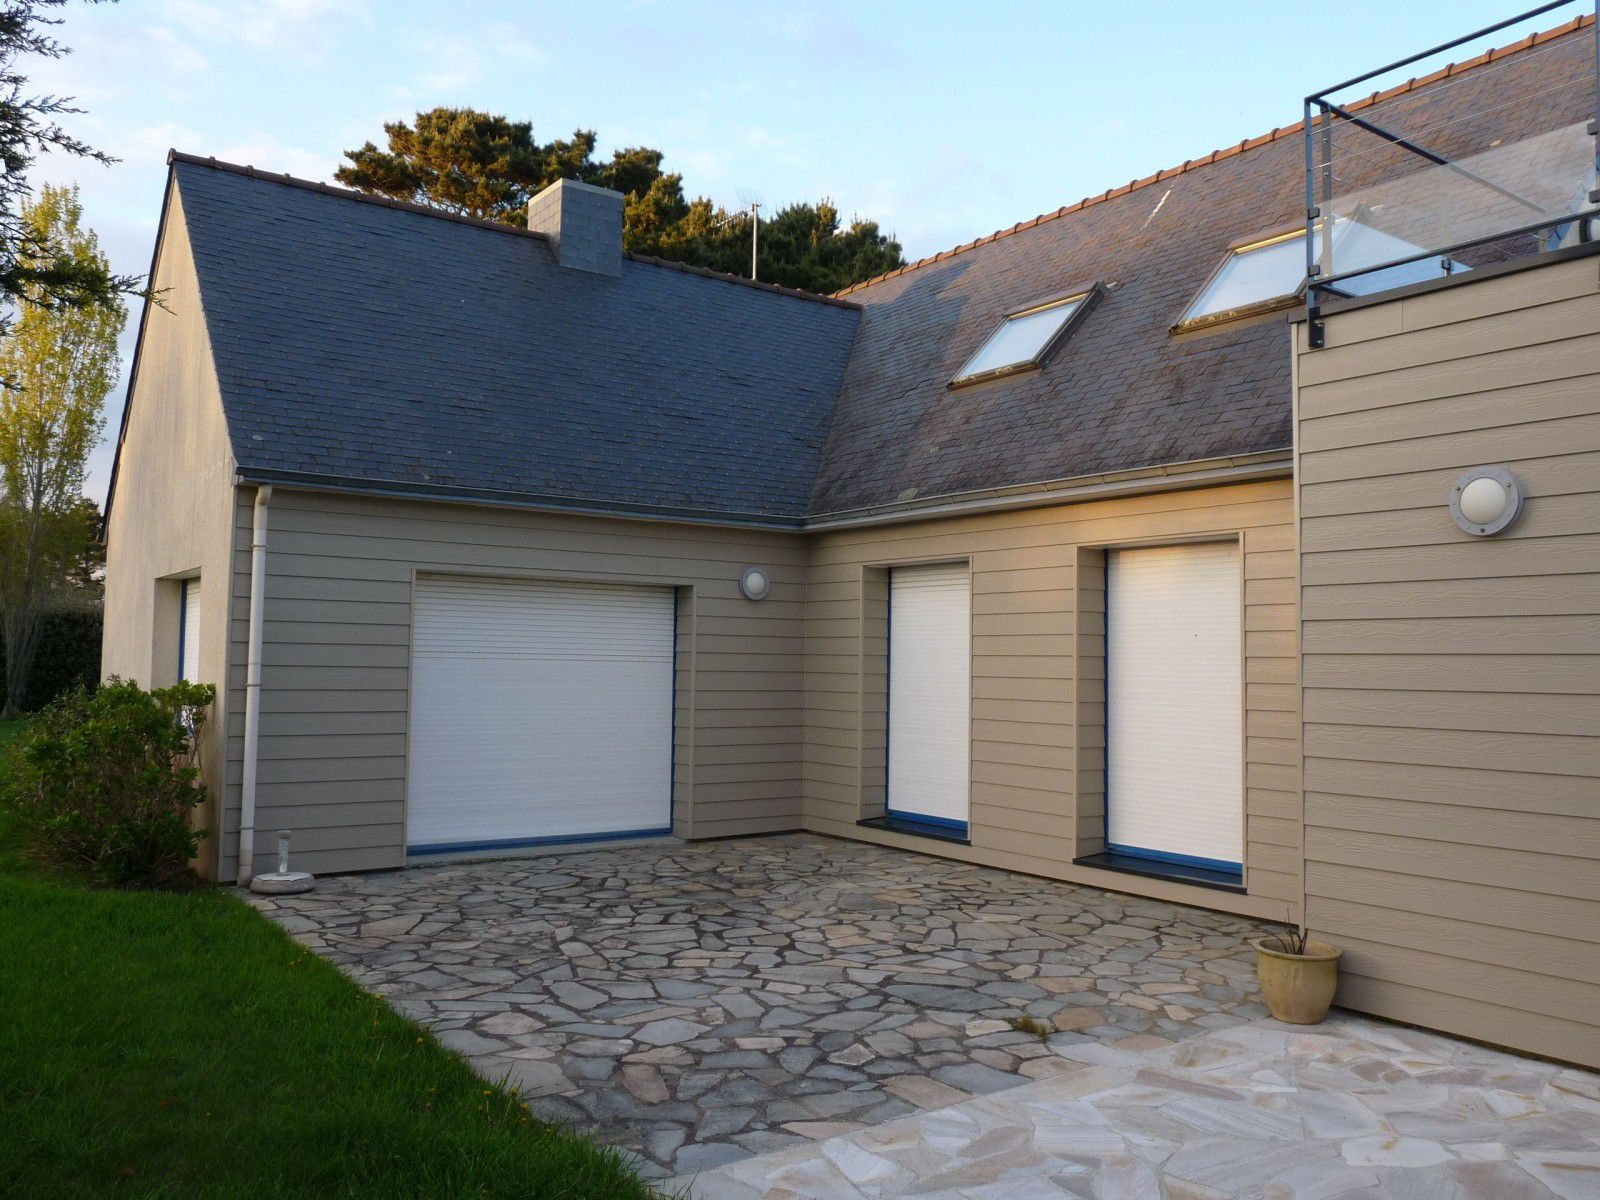 Extension bardage cedral atelier jbr associ s for Extension bardage